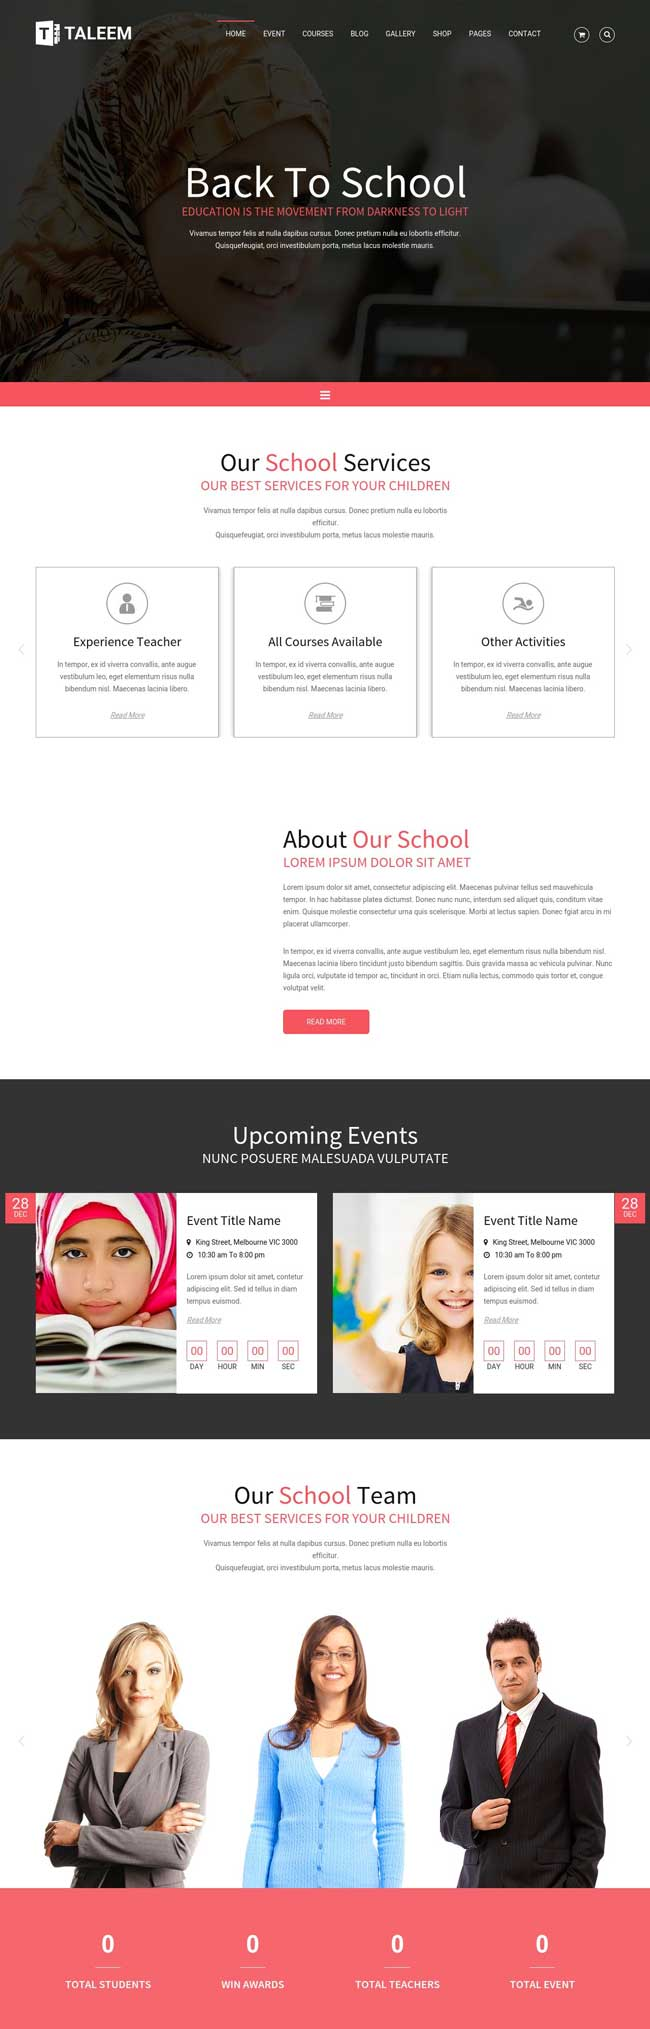 taleem-school-education-html5-template